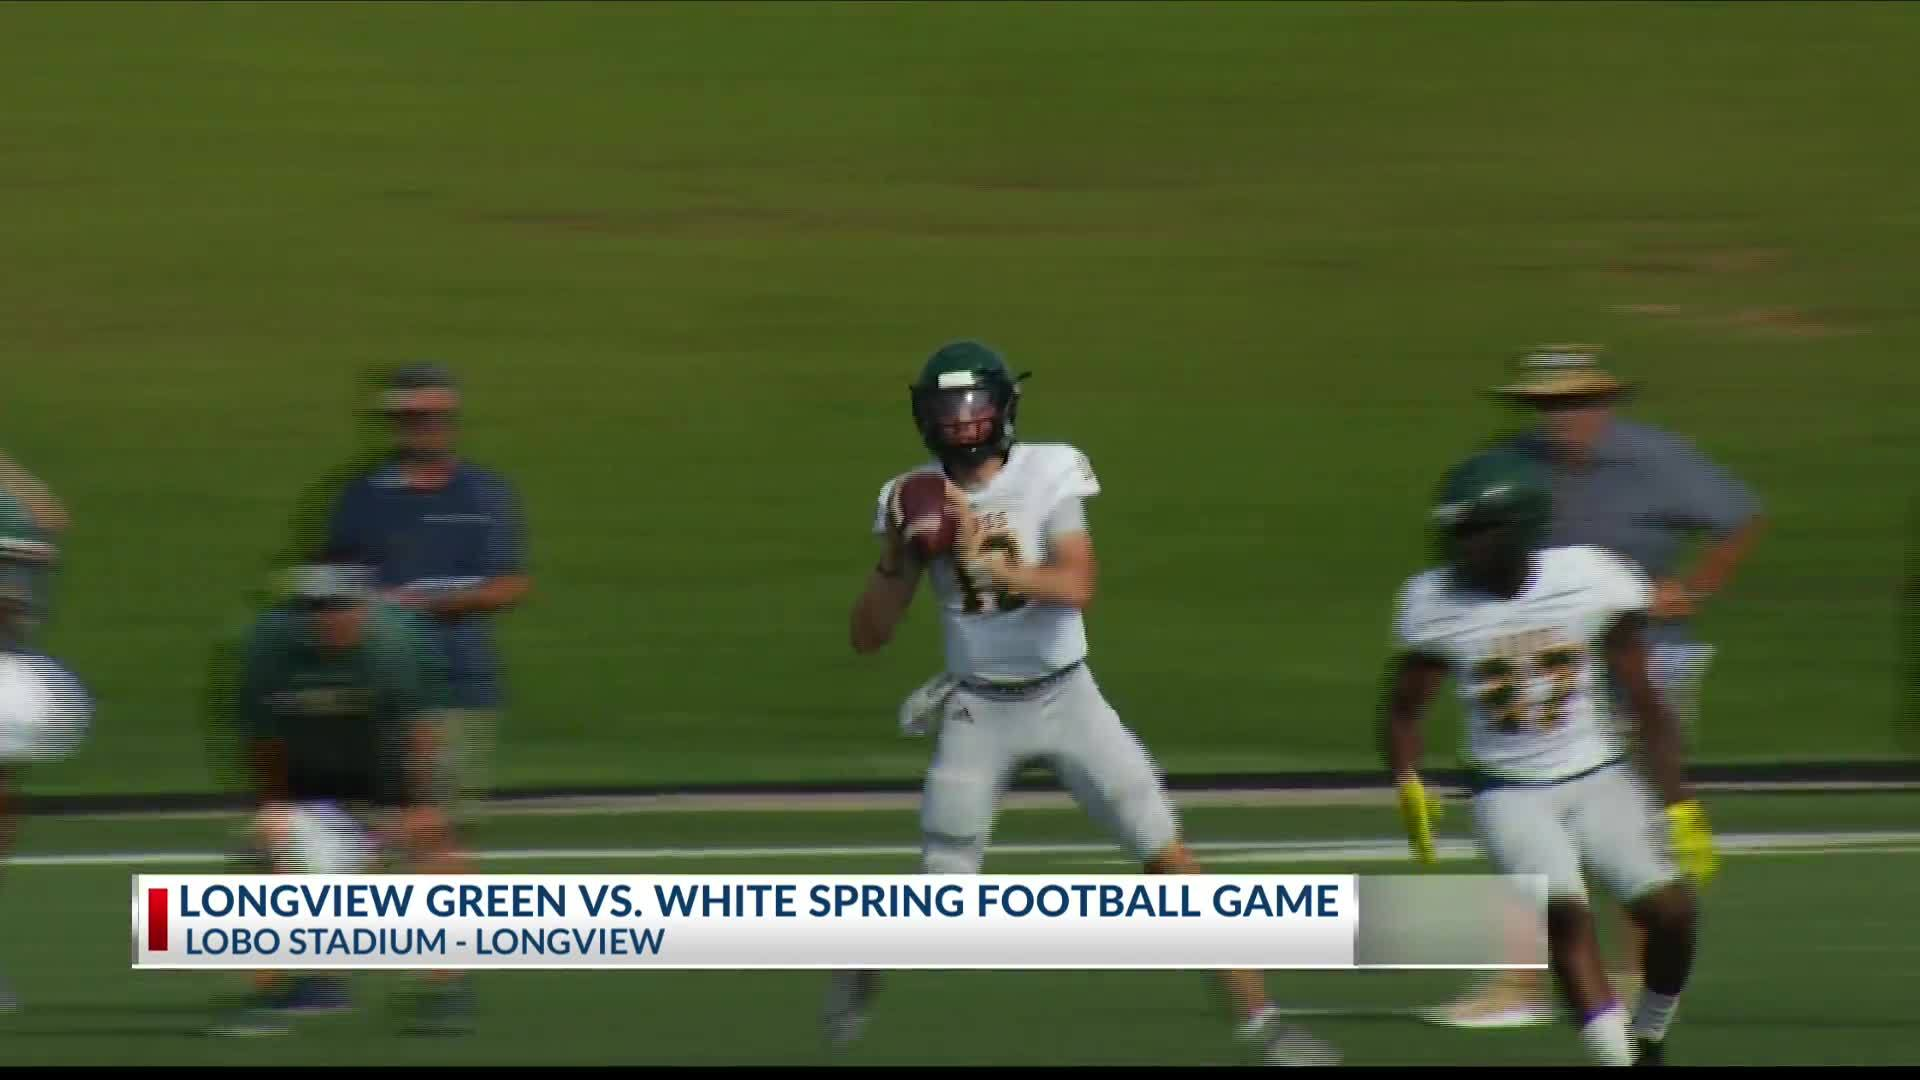 Longview_green_white_spring_football_gam_8_20190521034331